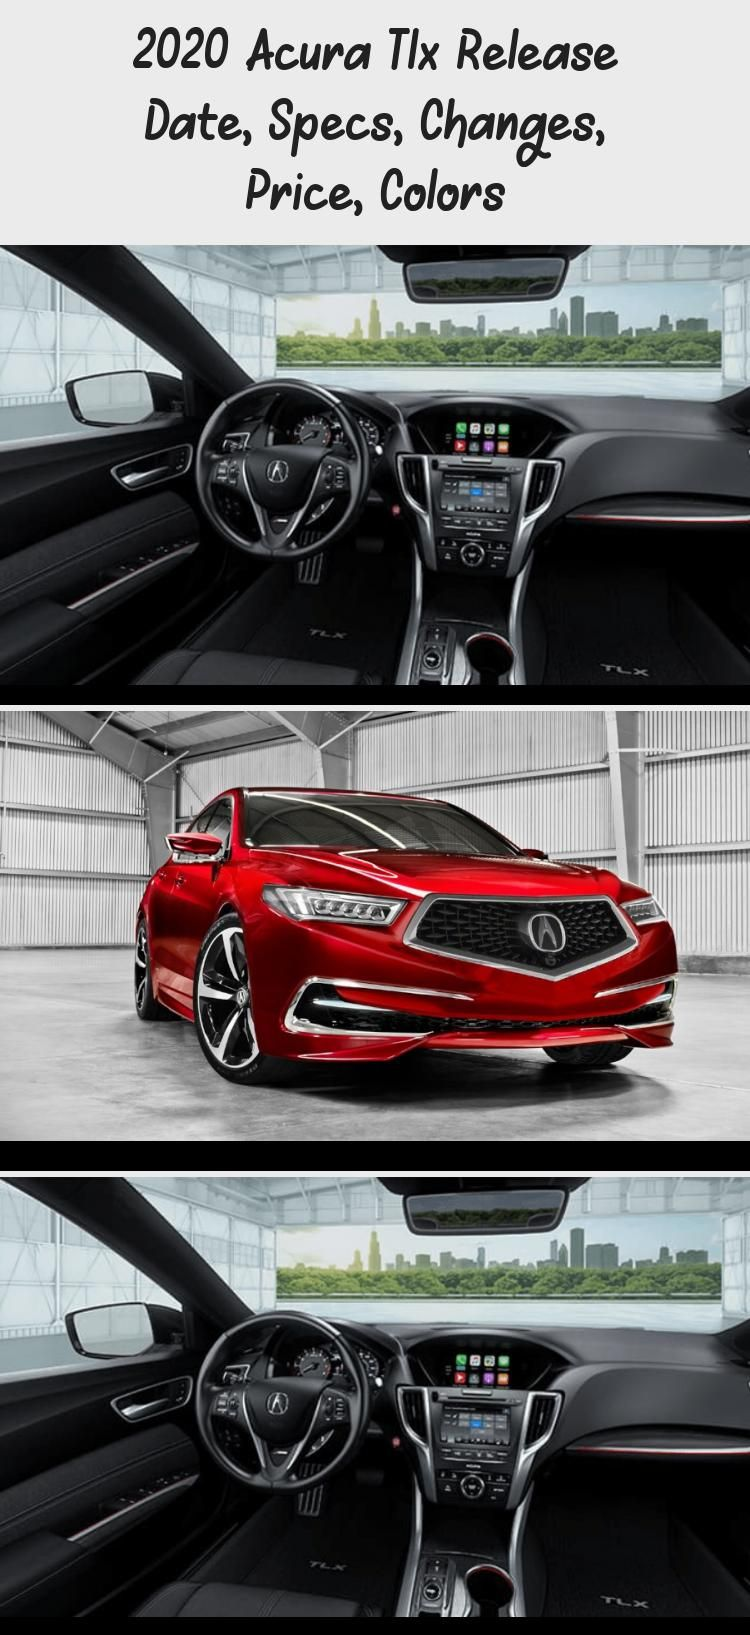 2020 Acura Tlx Release Date Specs Changes Price Colors Acurainfiniti Acura2014 Acurajdm Acura2005 Acuranxs In 2020 Acura Tlx Acura Ford Ranger